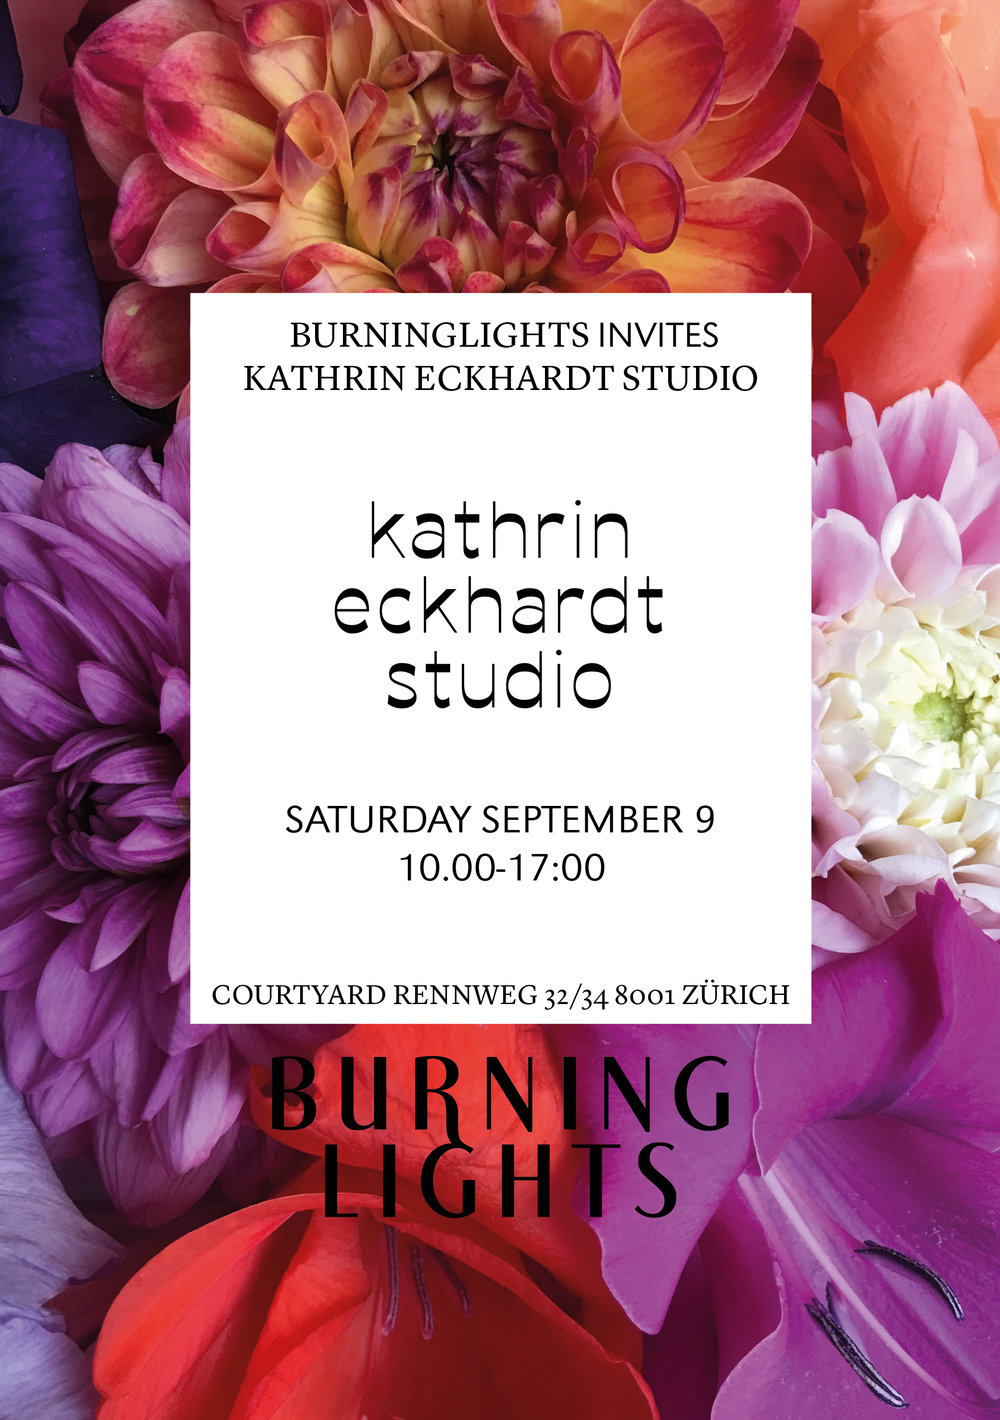 BURNINGLIGHTS_INVITES_KATHRINECKHARDT_SEPT.jpg